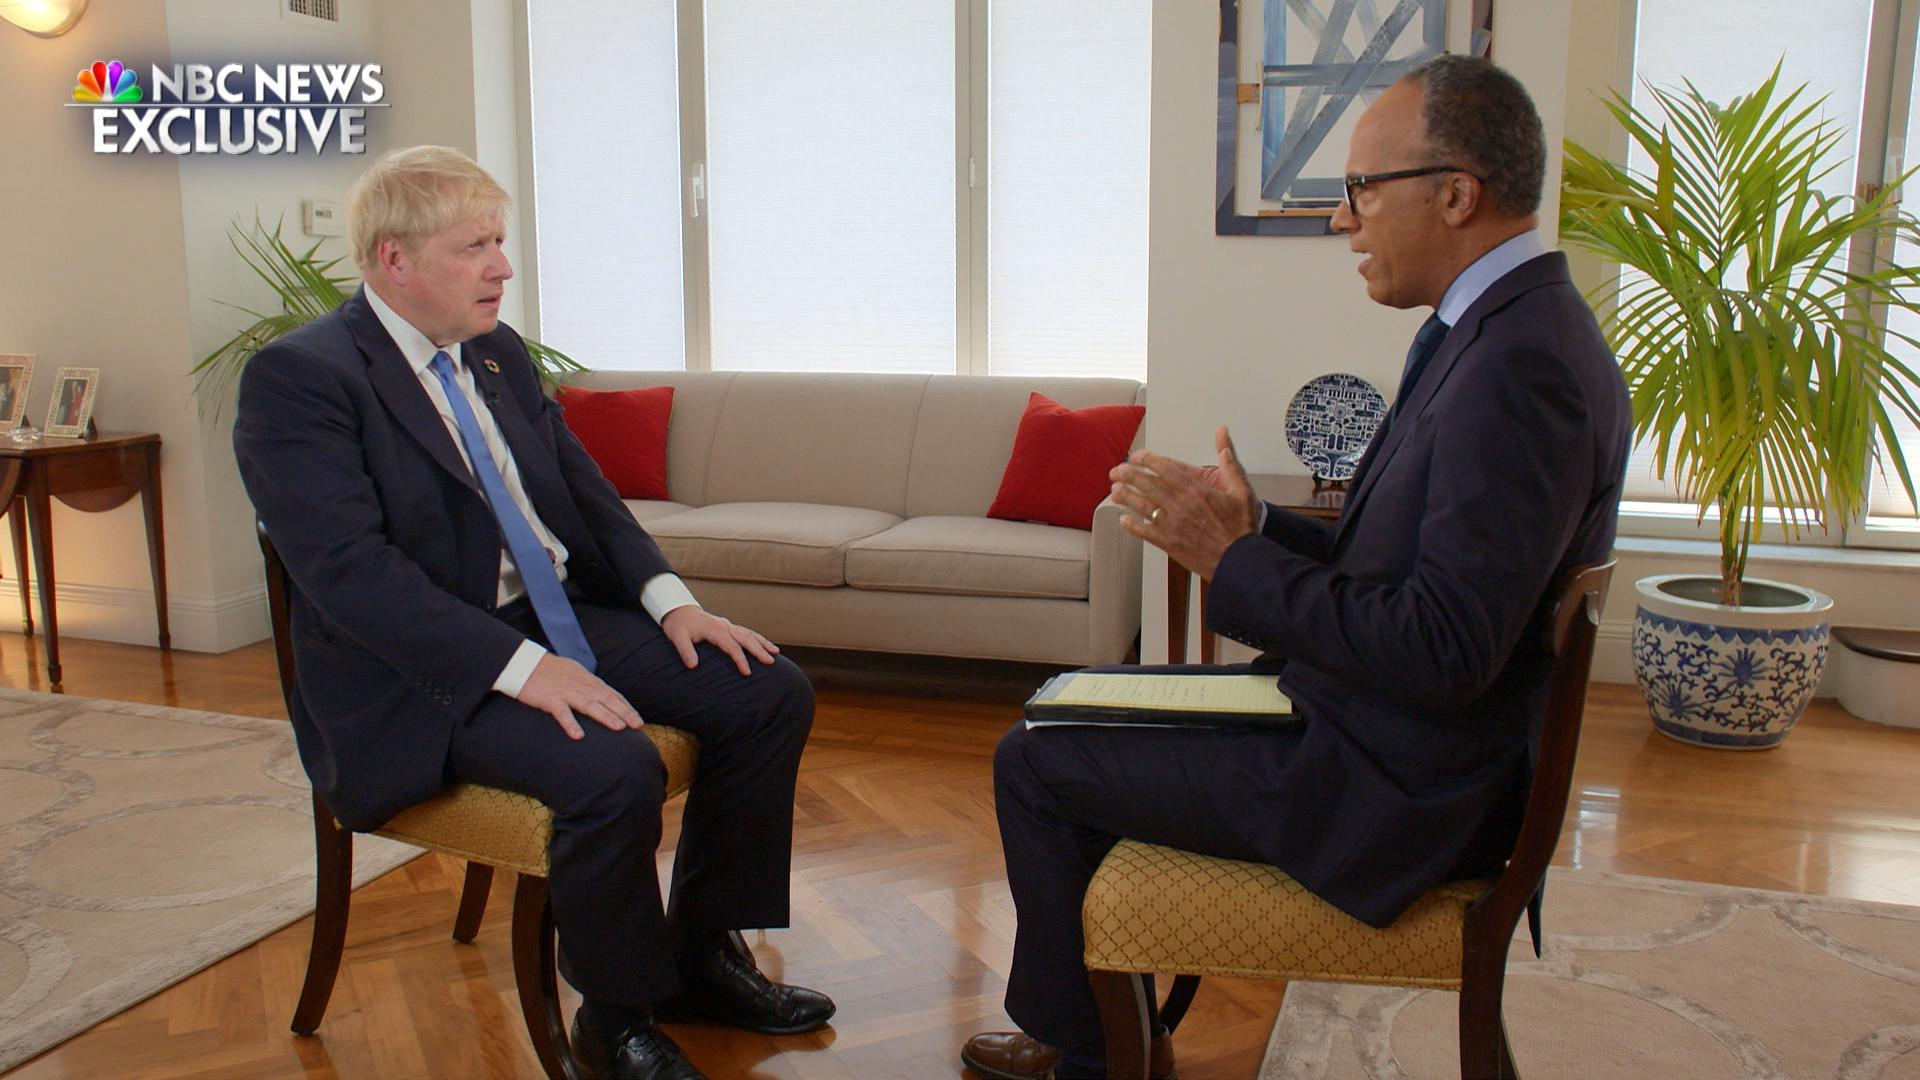 Boris Johnson calls for new Iran nuclear deal, says Trump is the 'one guy' to get it done